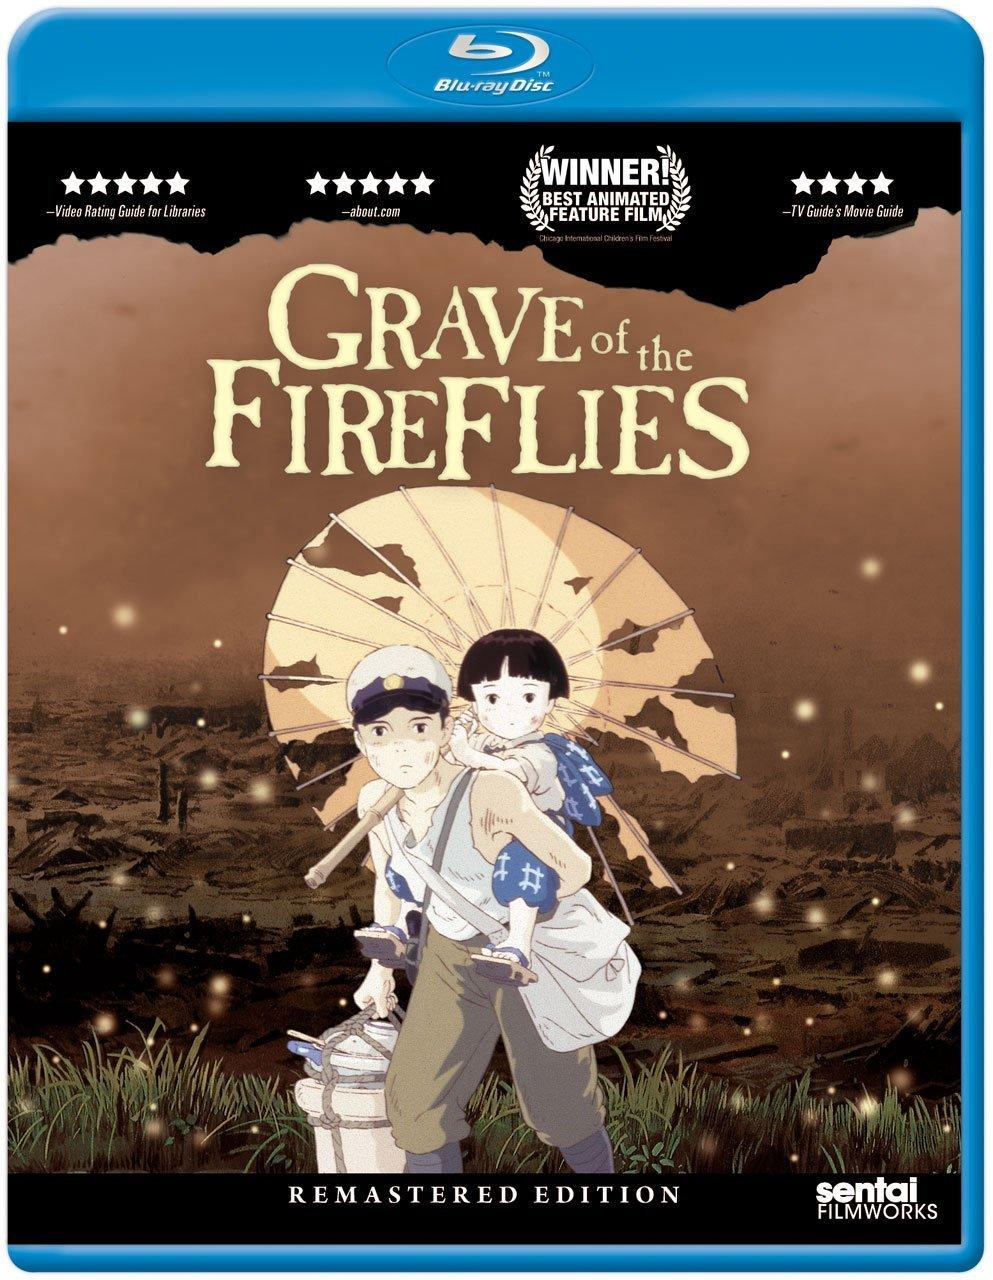 $14.99 Grave of the Fireflies [Blu-ray Remastered]